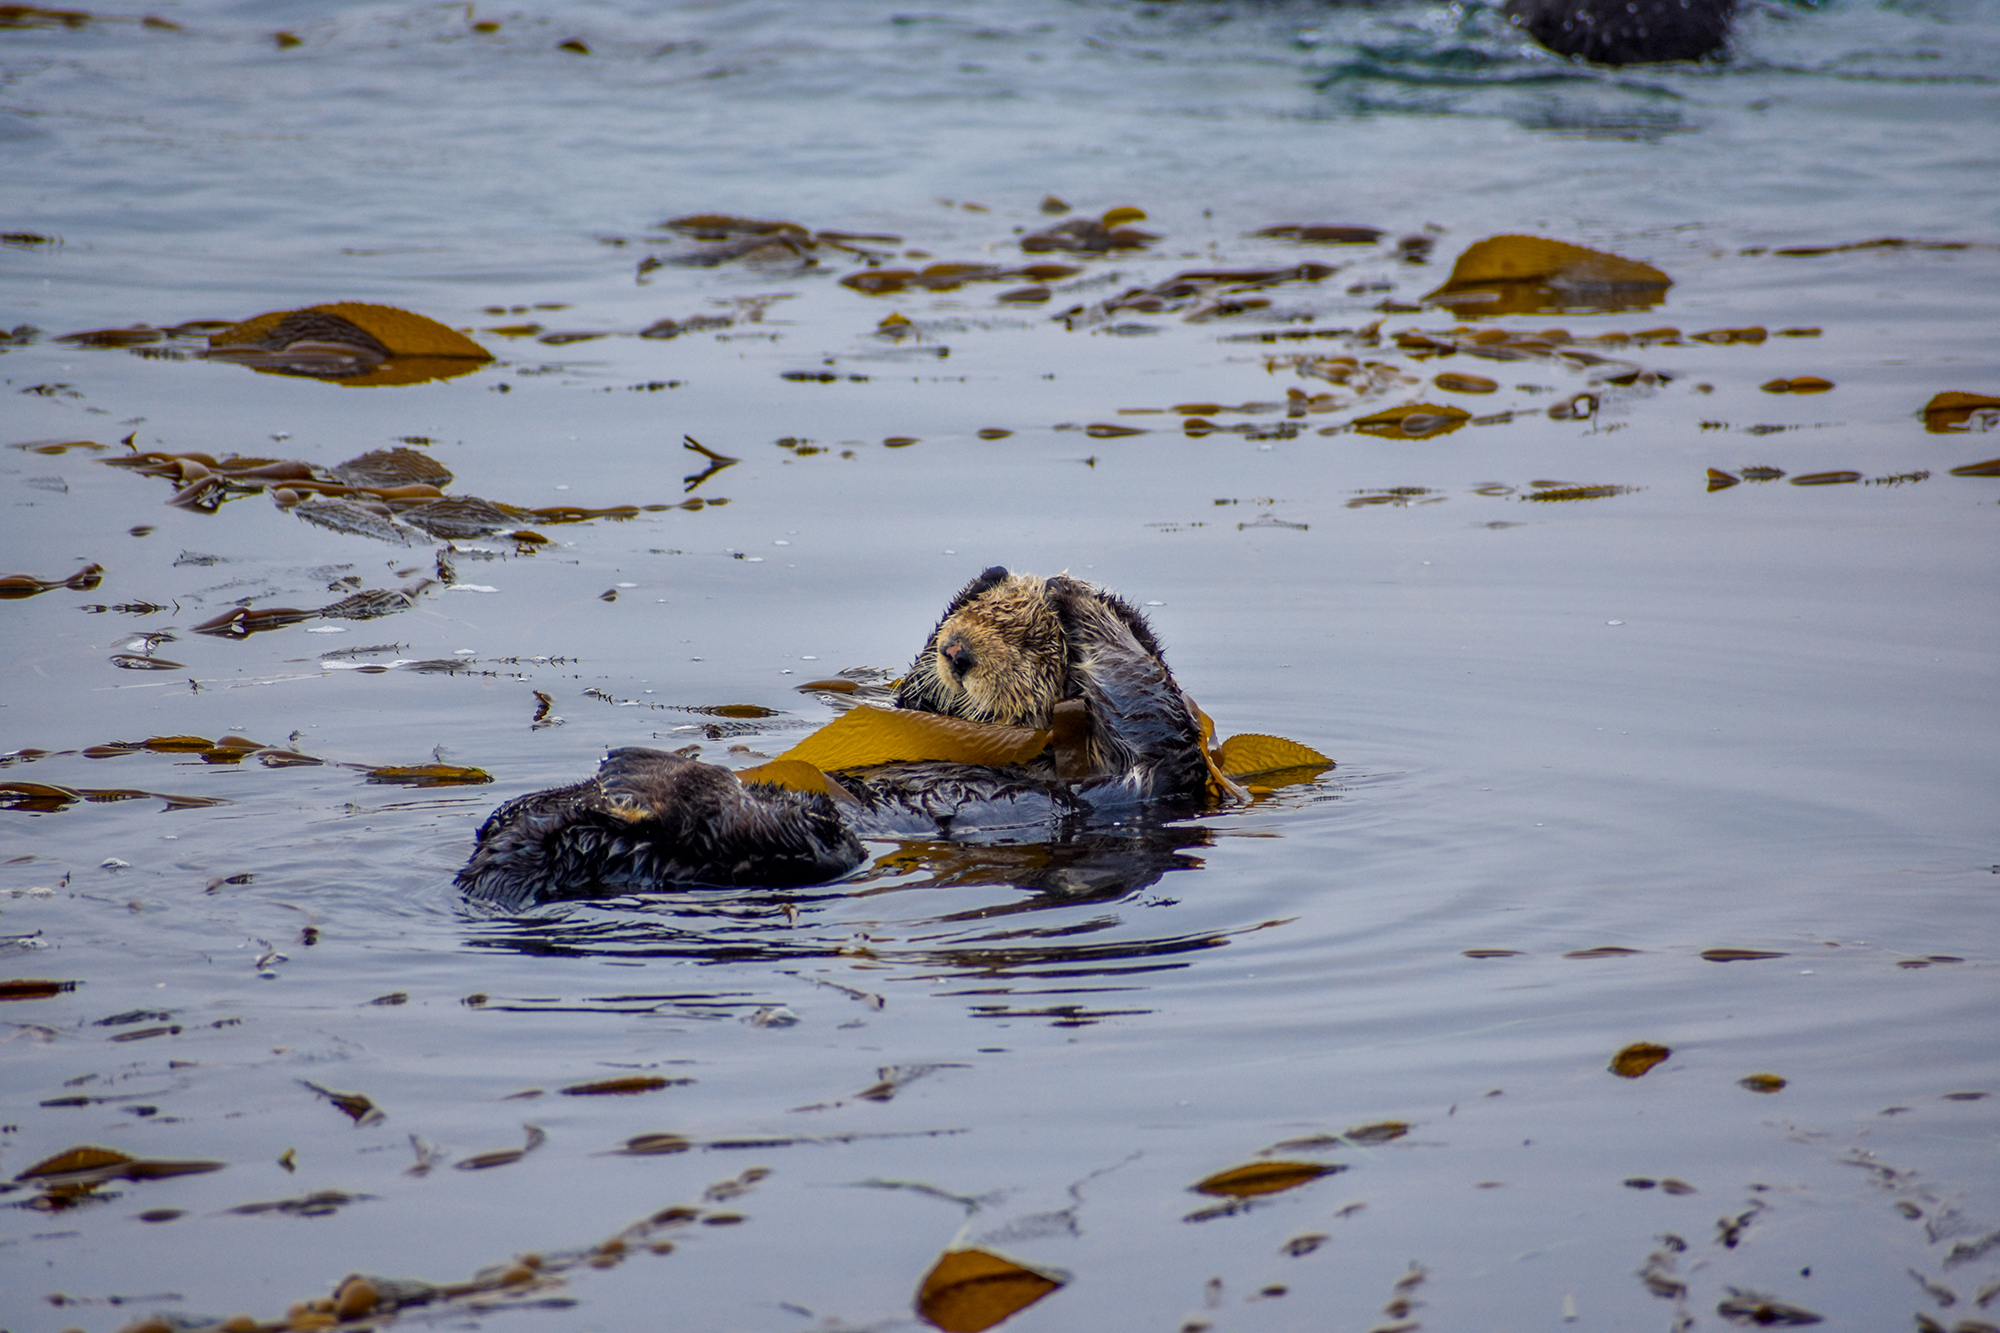 Sea otter touches his head while waking up in Morro Bay, California.